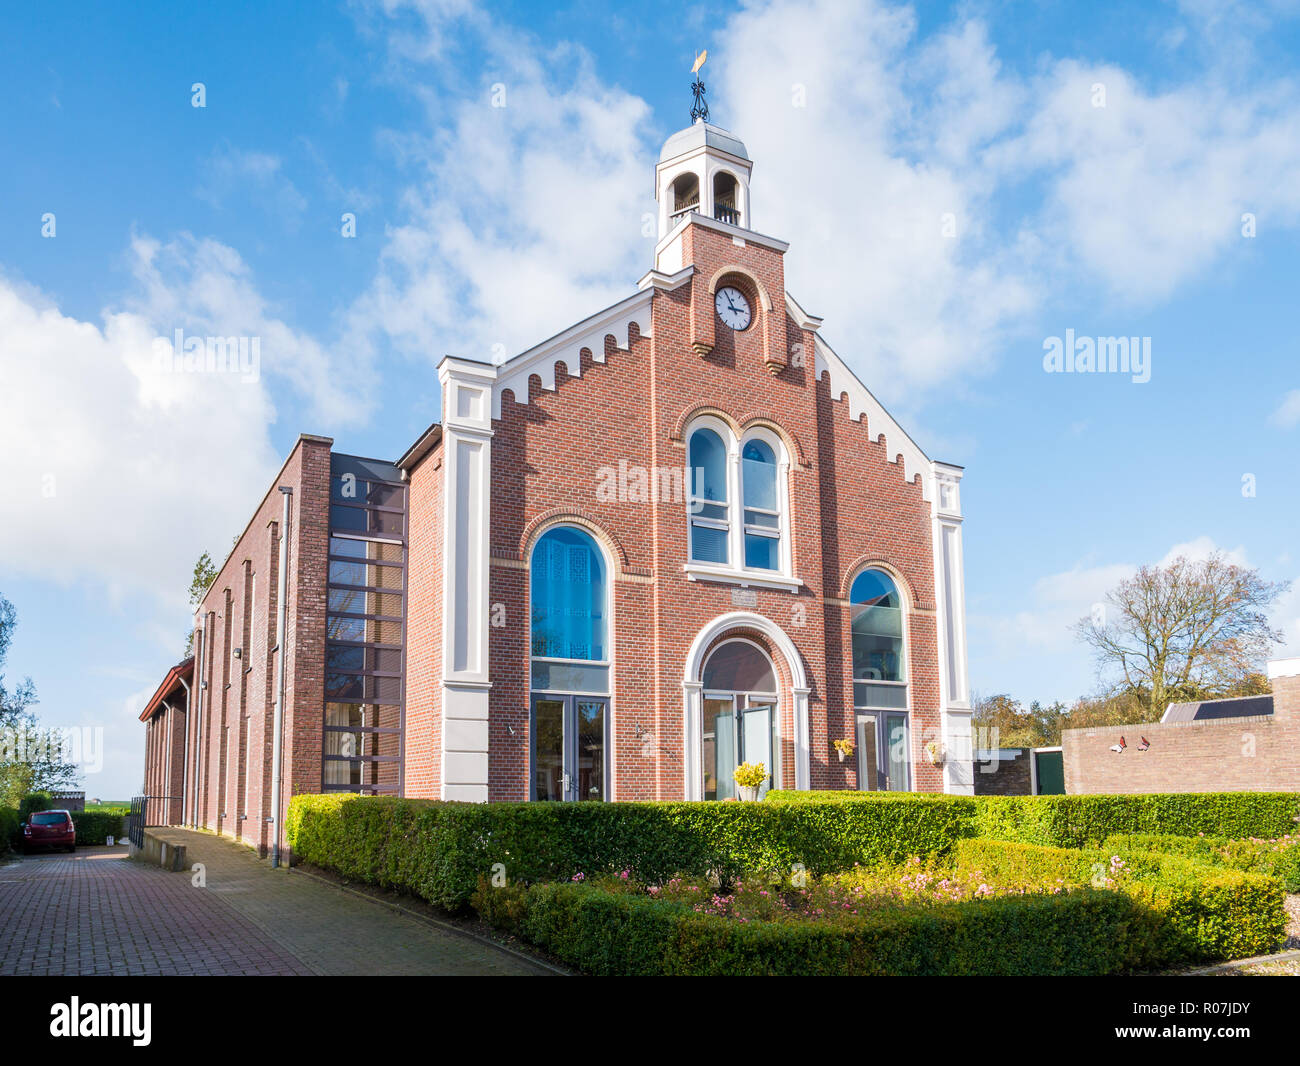 Former church building now apartment building in downtown Workum, Friesland, Netherlands Stock Photo